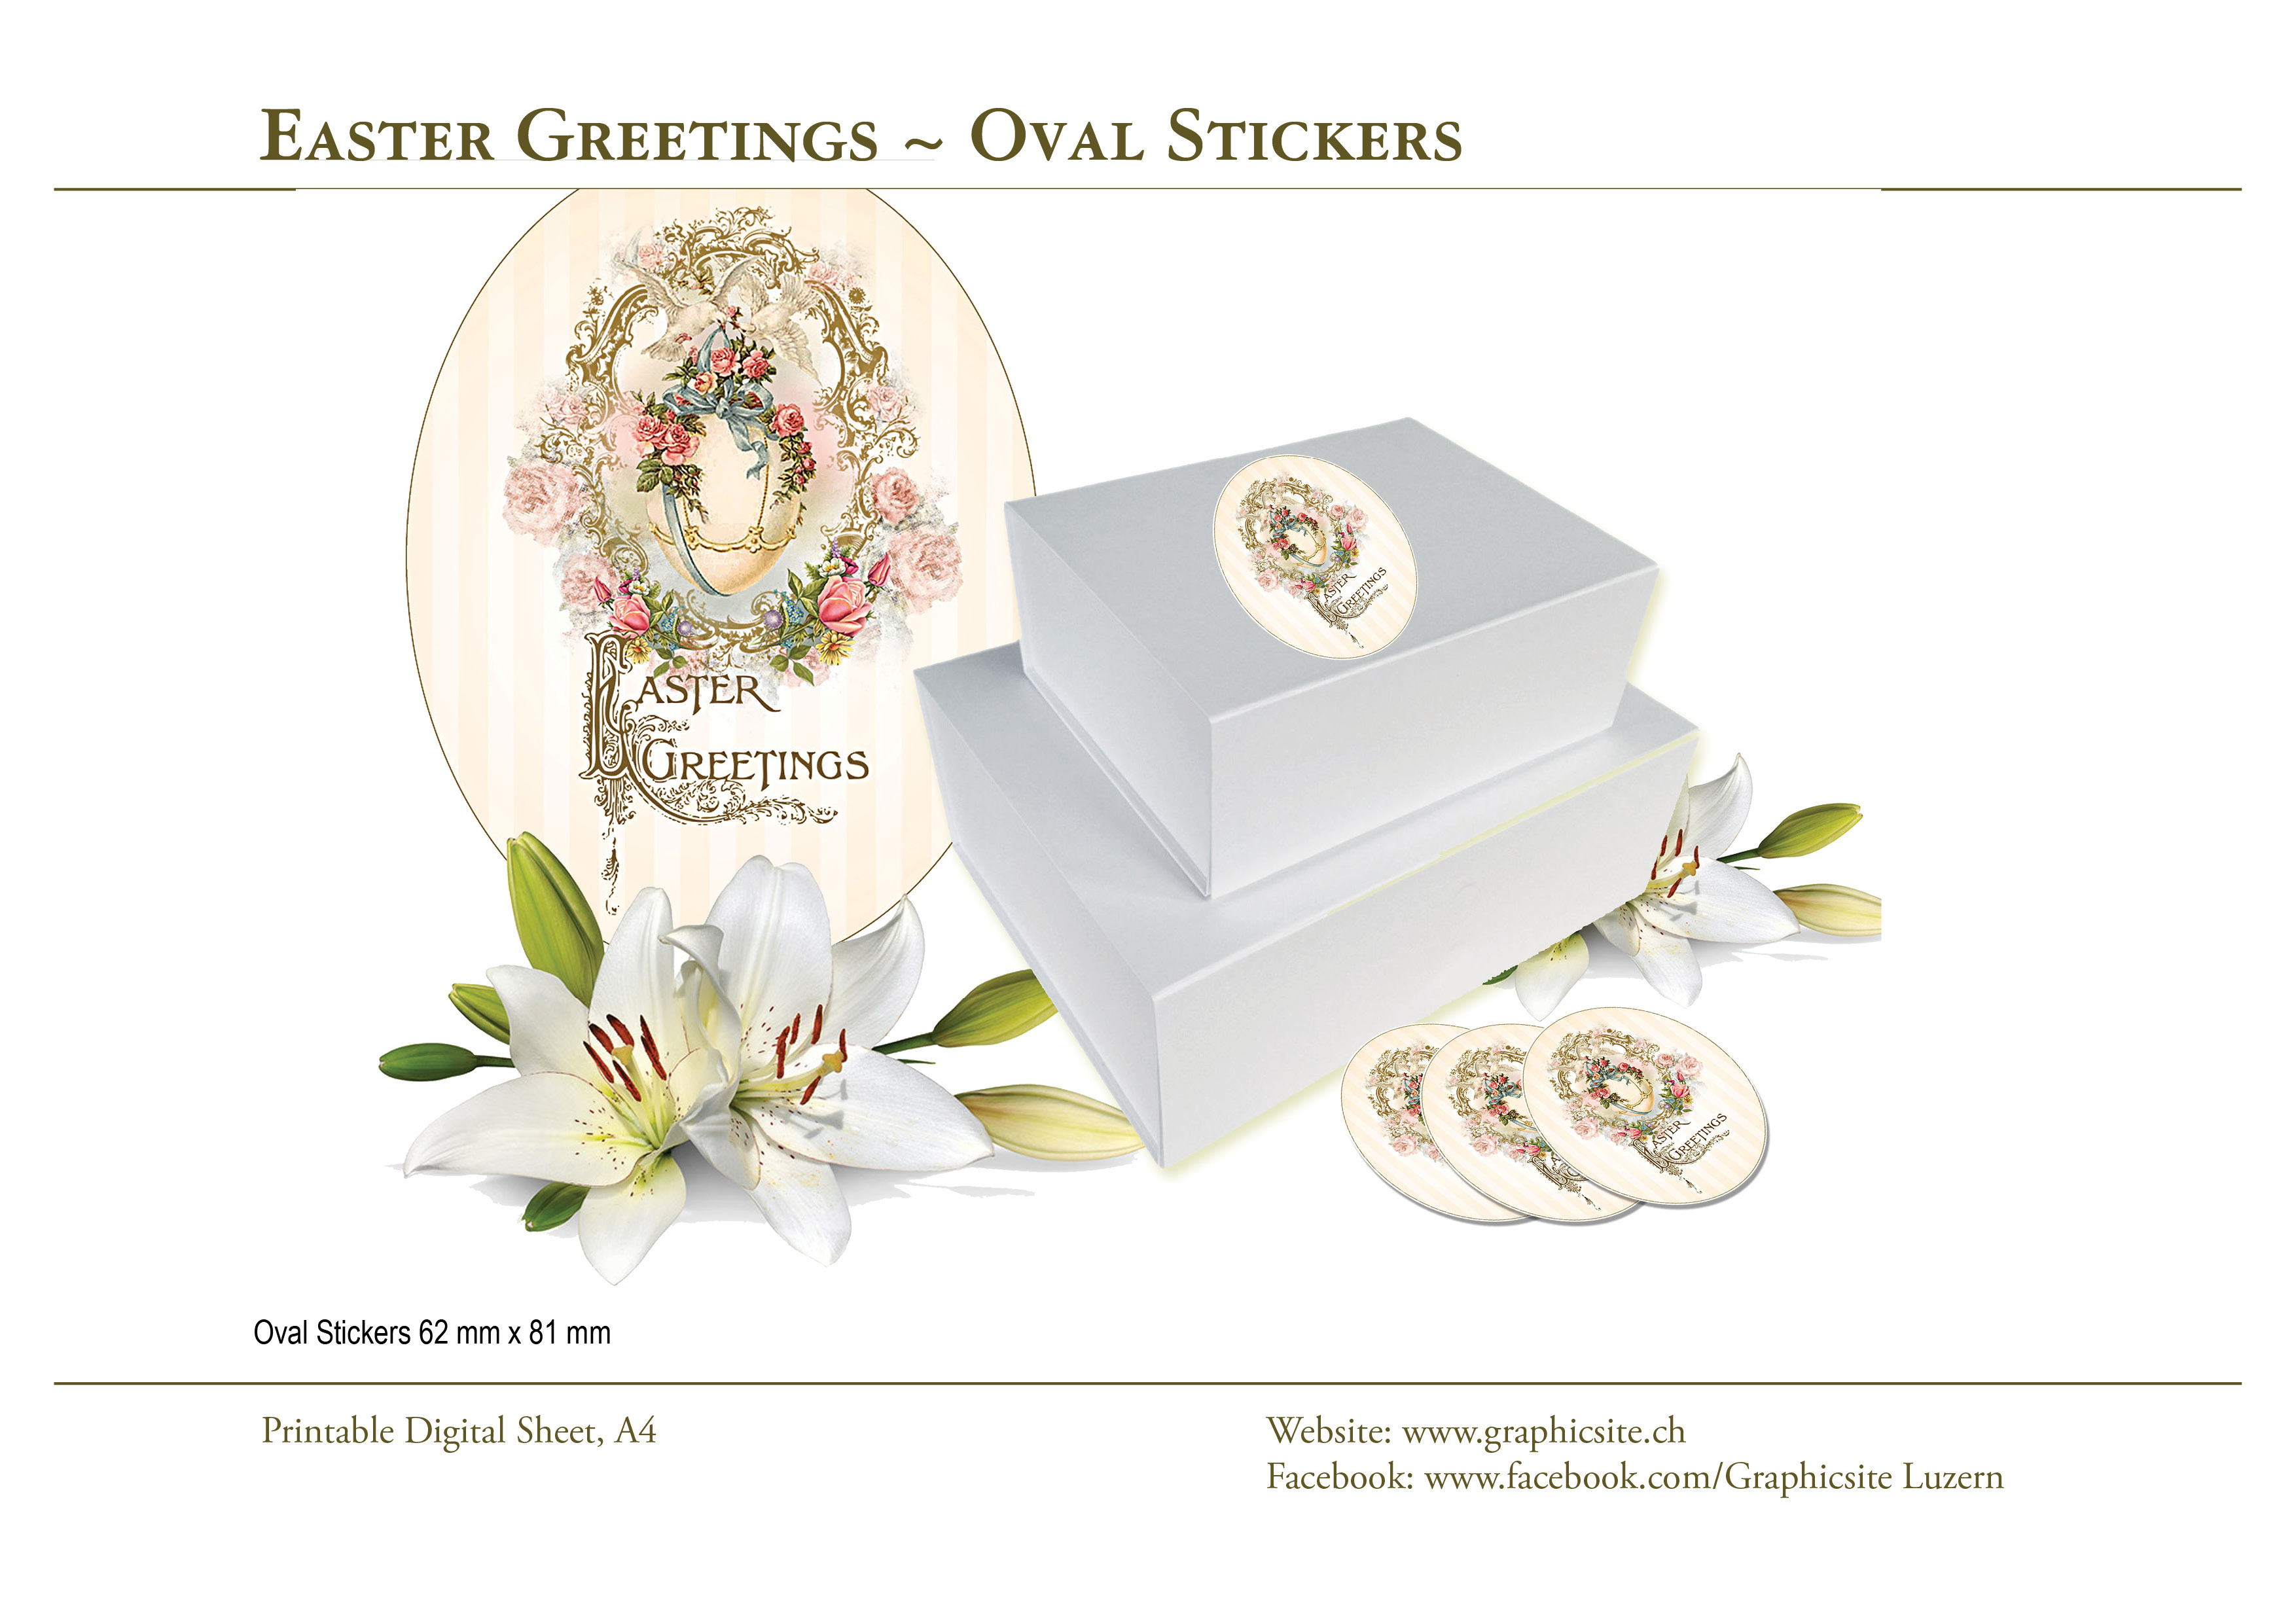 Printable Digital Sheets - Labels - Stickers - Easter Greetings - #easter, #labels, #gifts, #floral, #roses, #victorian, #vintage,